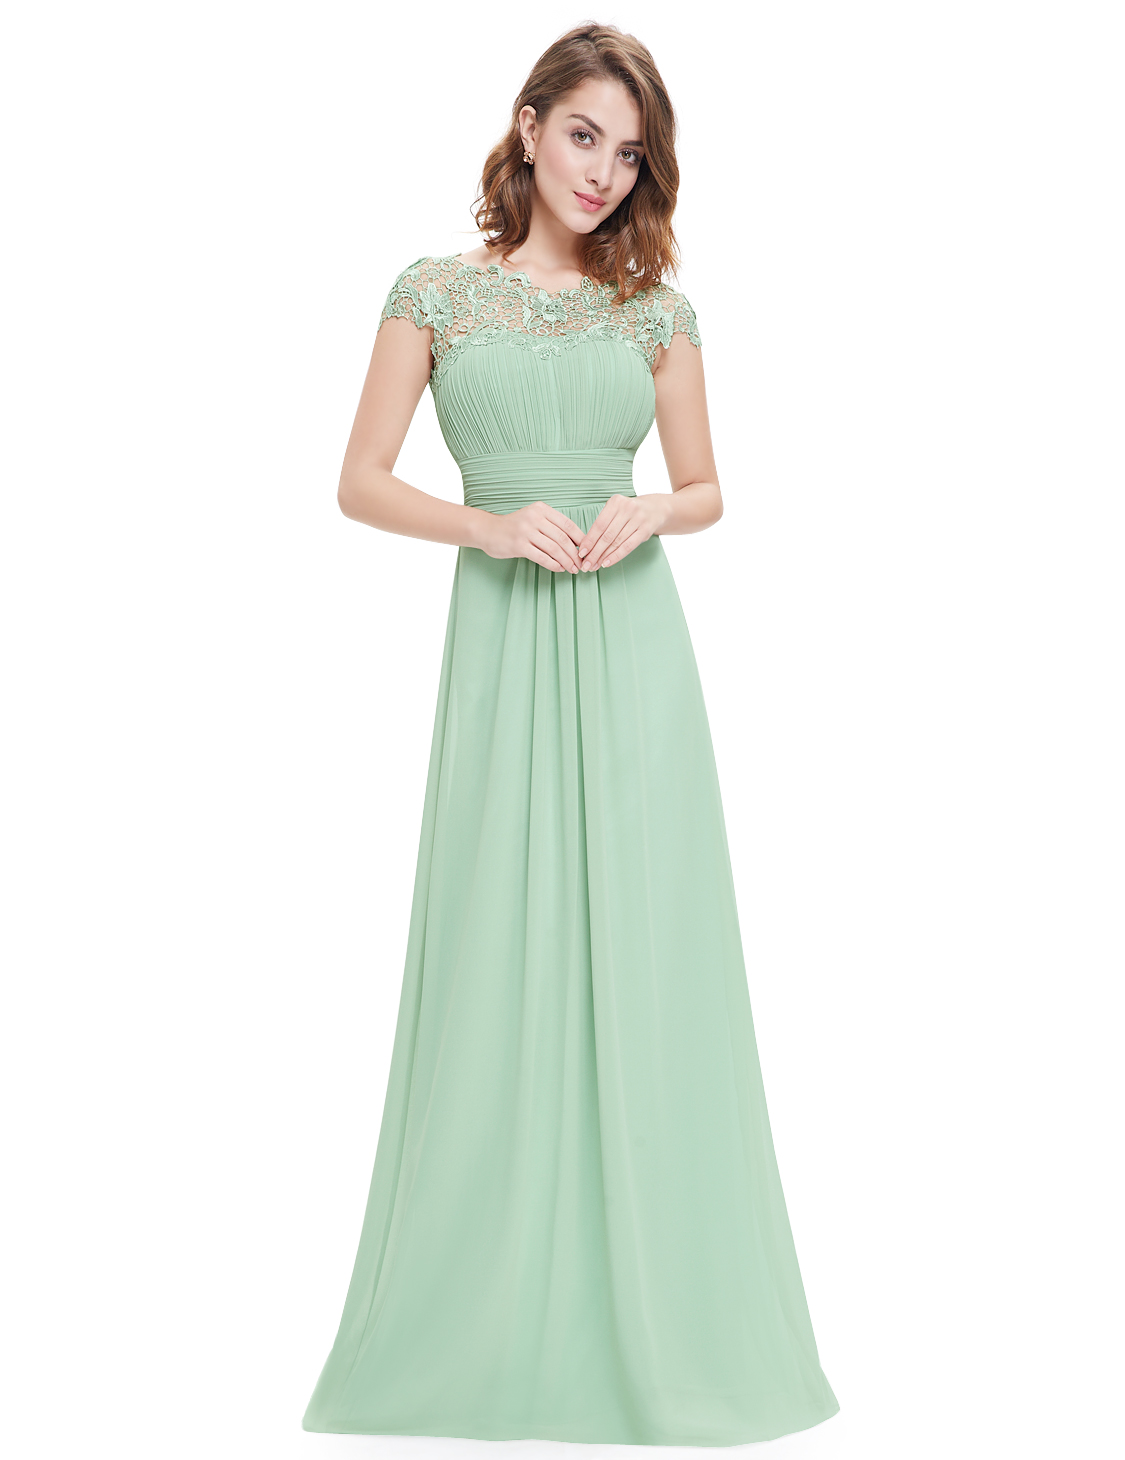 2016 Women's Bridesmaid Lace Formal Evening Ball Gown Prom ...